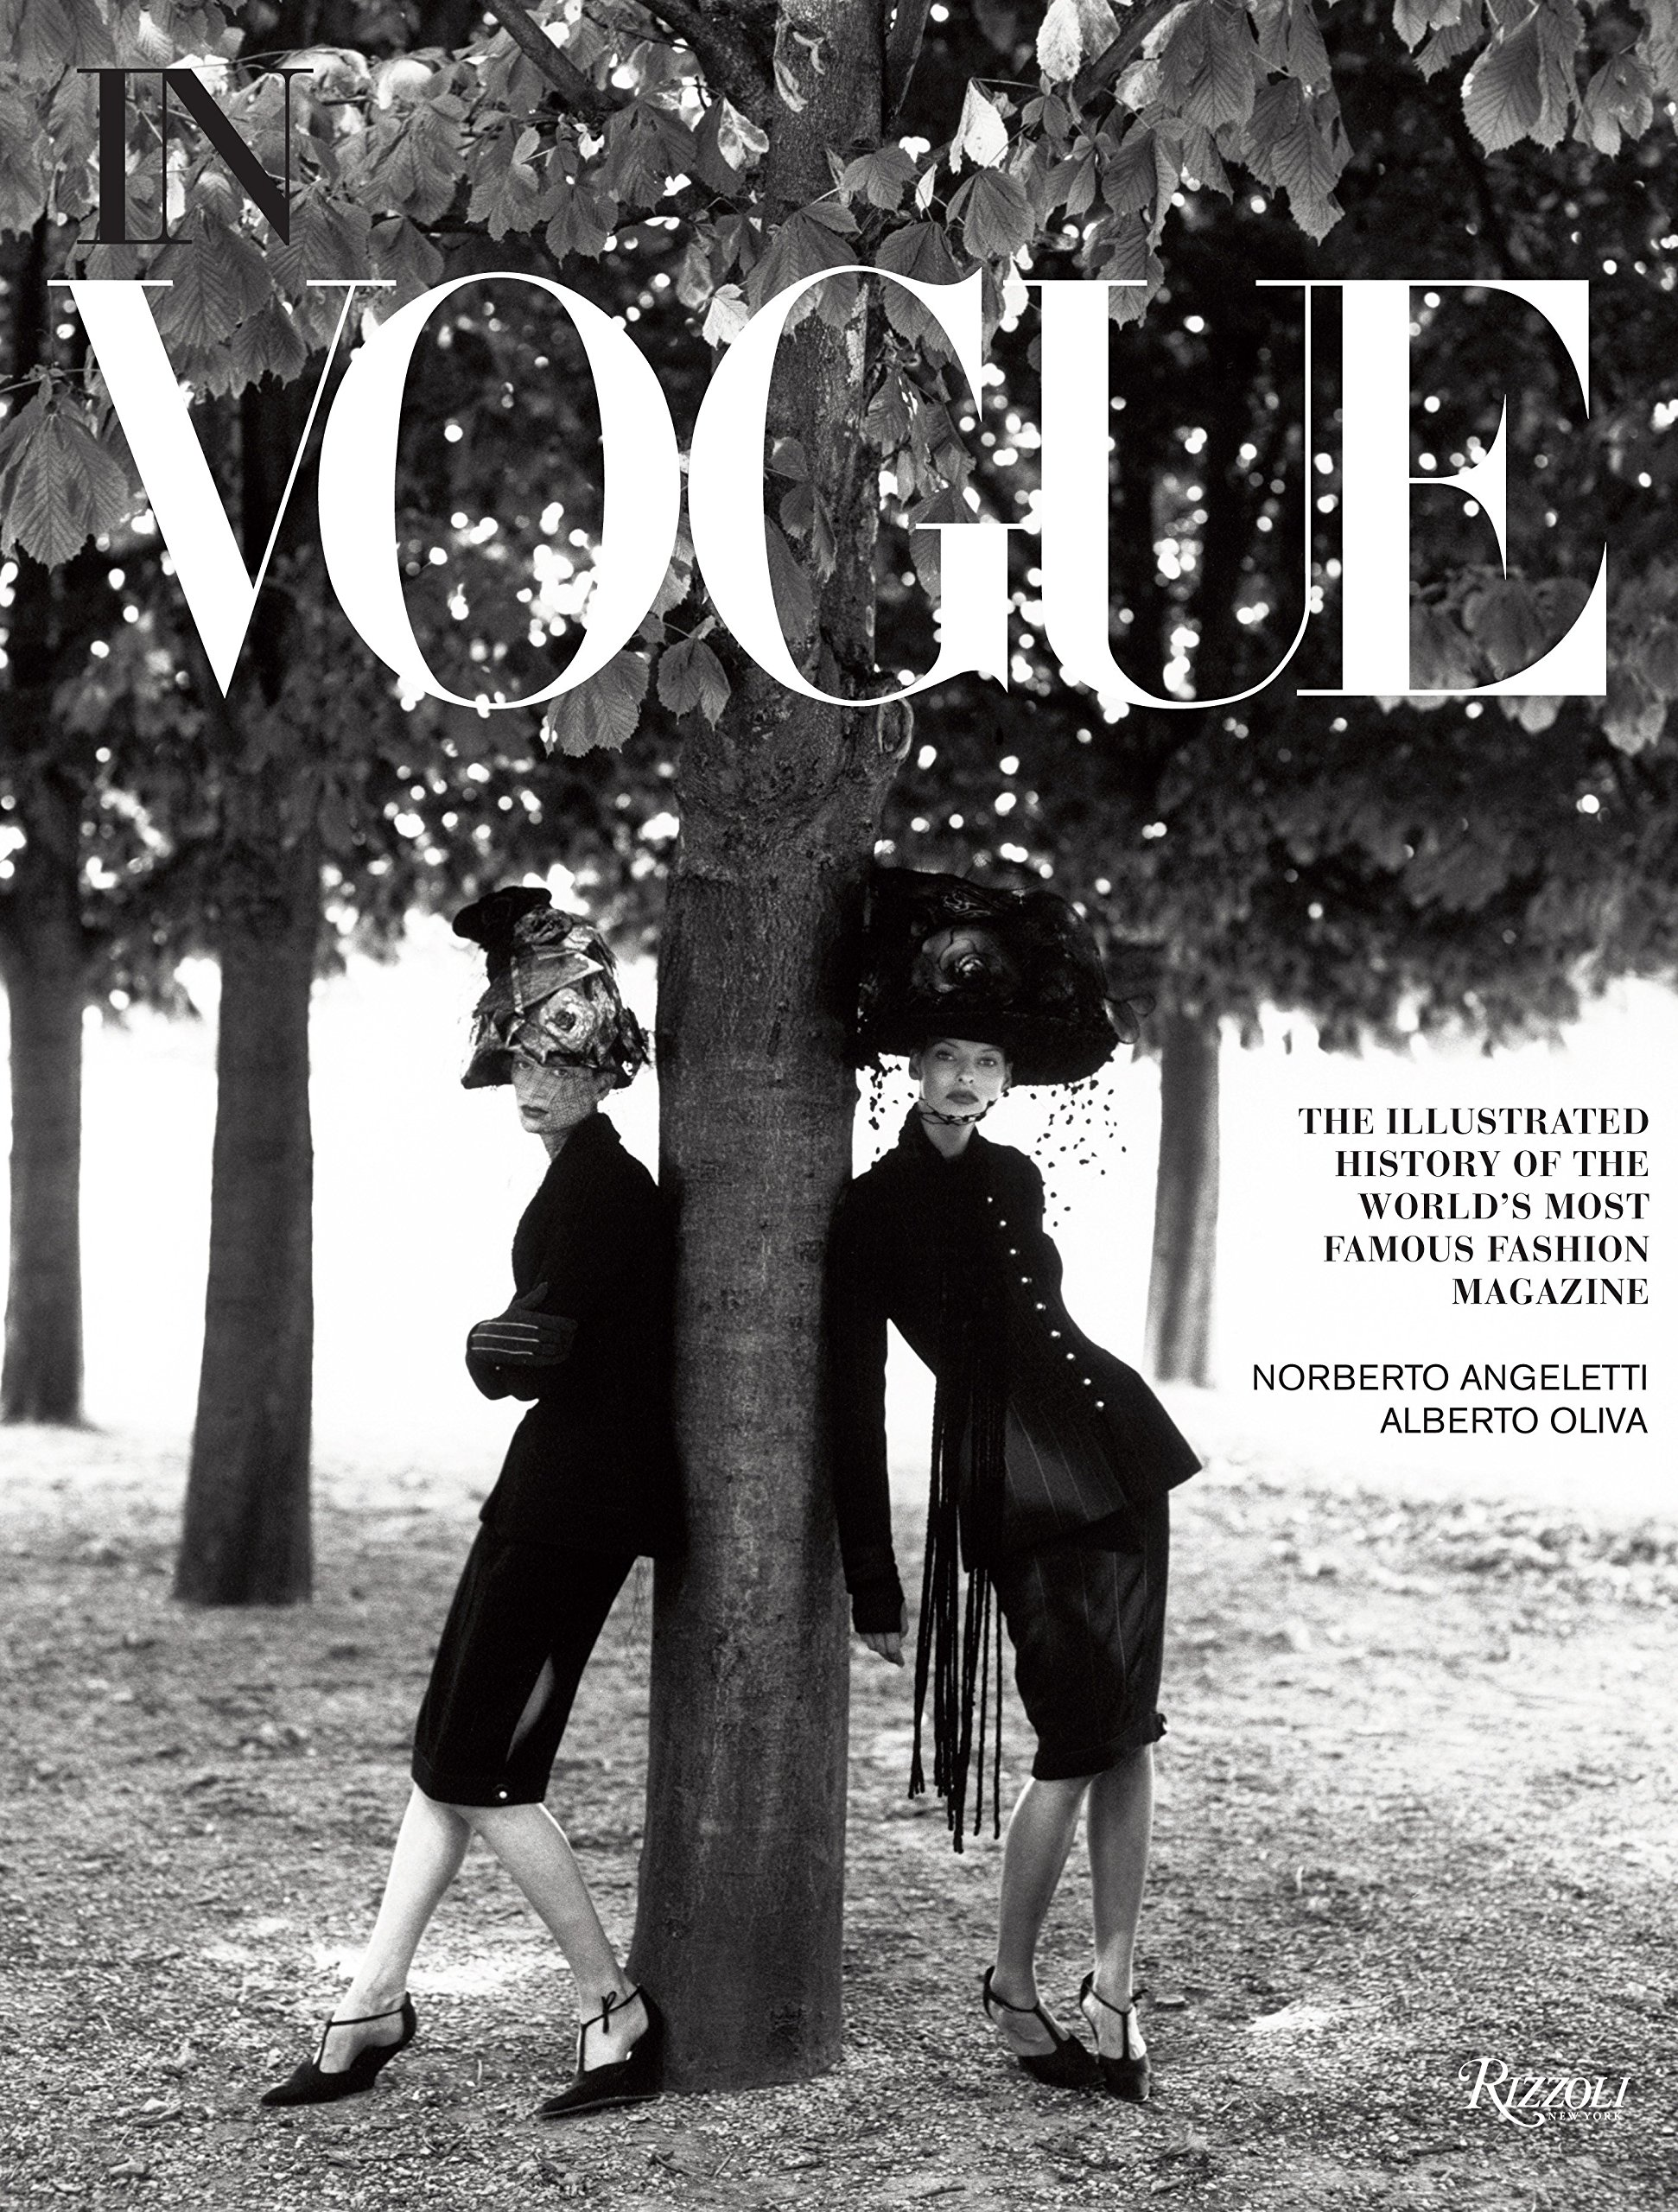 In Vogue An Illustrated History of the World s Most Famous Fashion Magazine